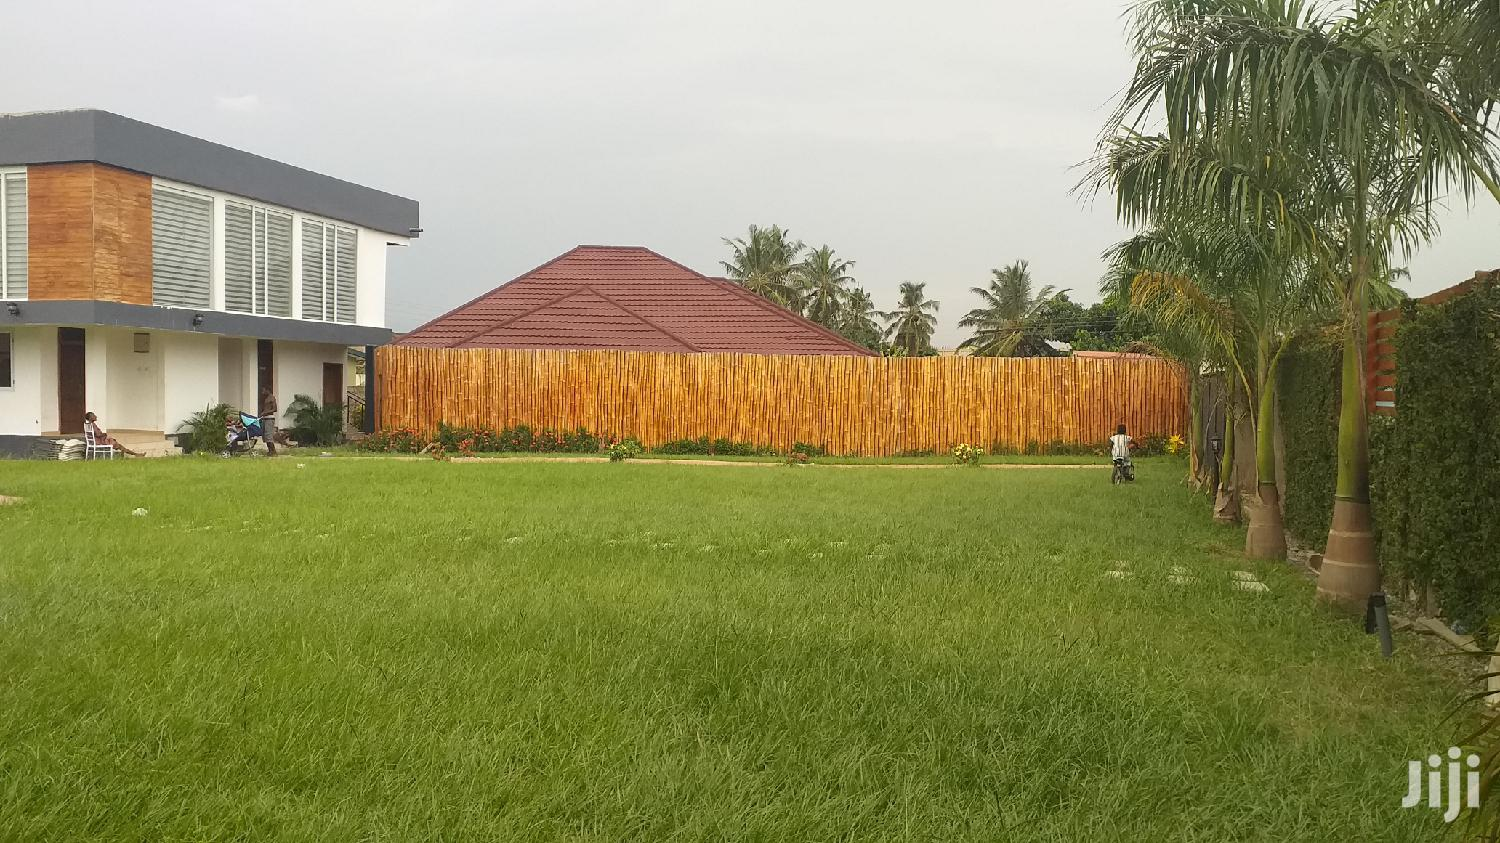 Wonderful Event Centre At Westlands | Event centres, Venues and Workstations for sale in Achimota, Greater Accra, Ghana